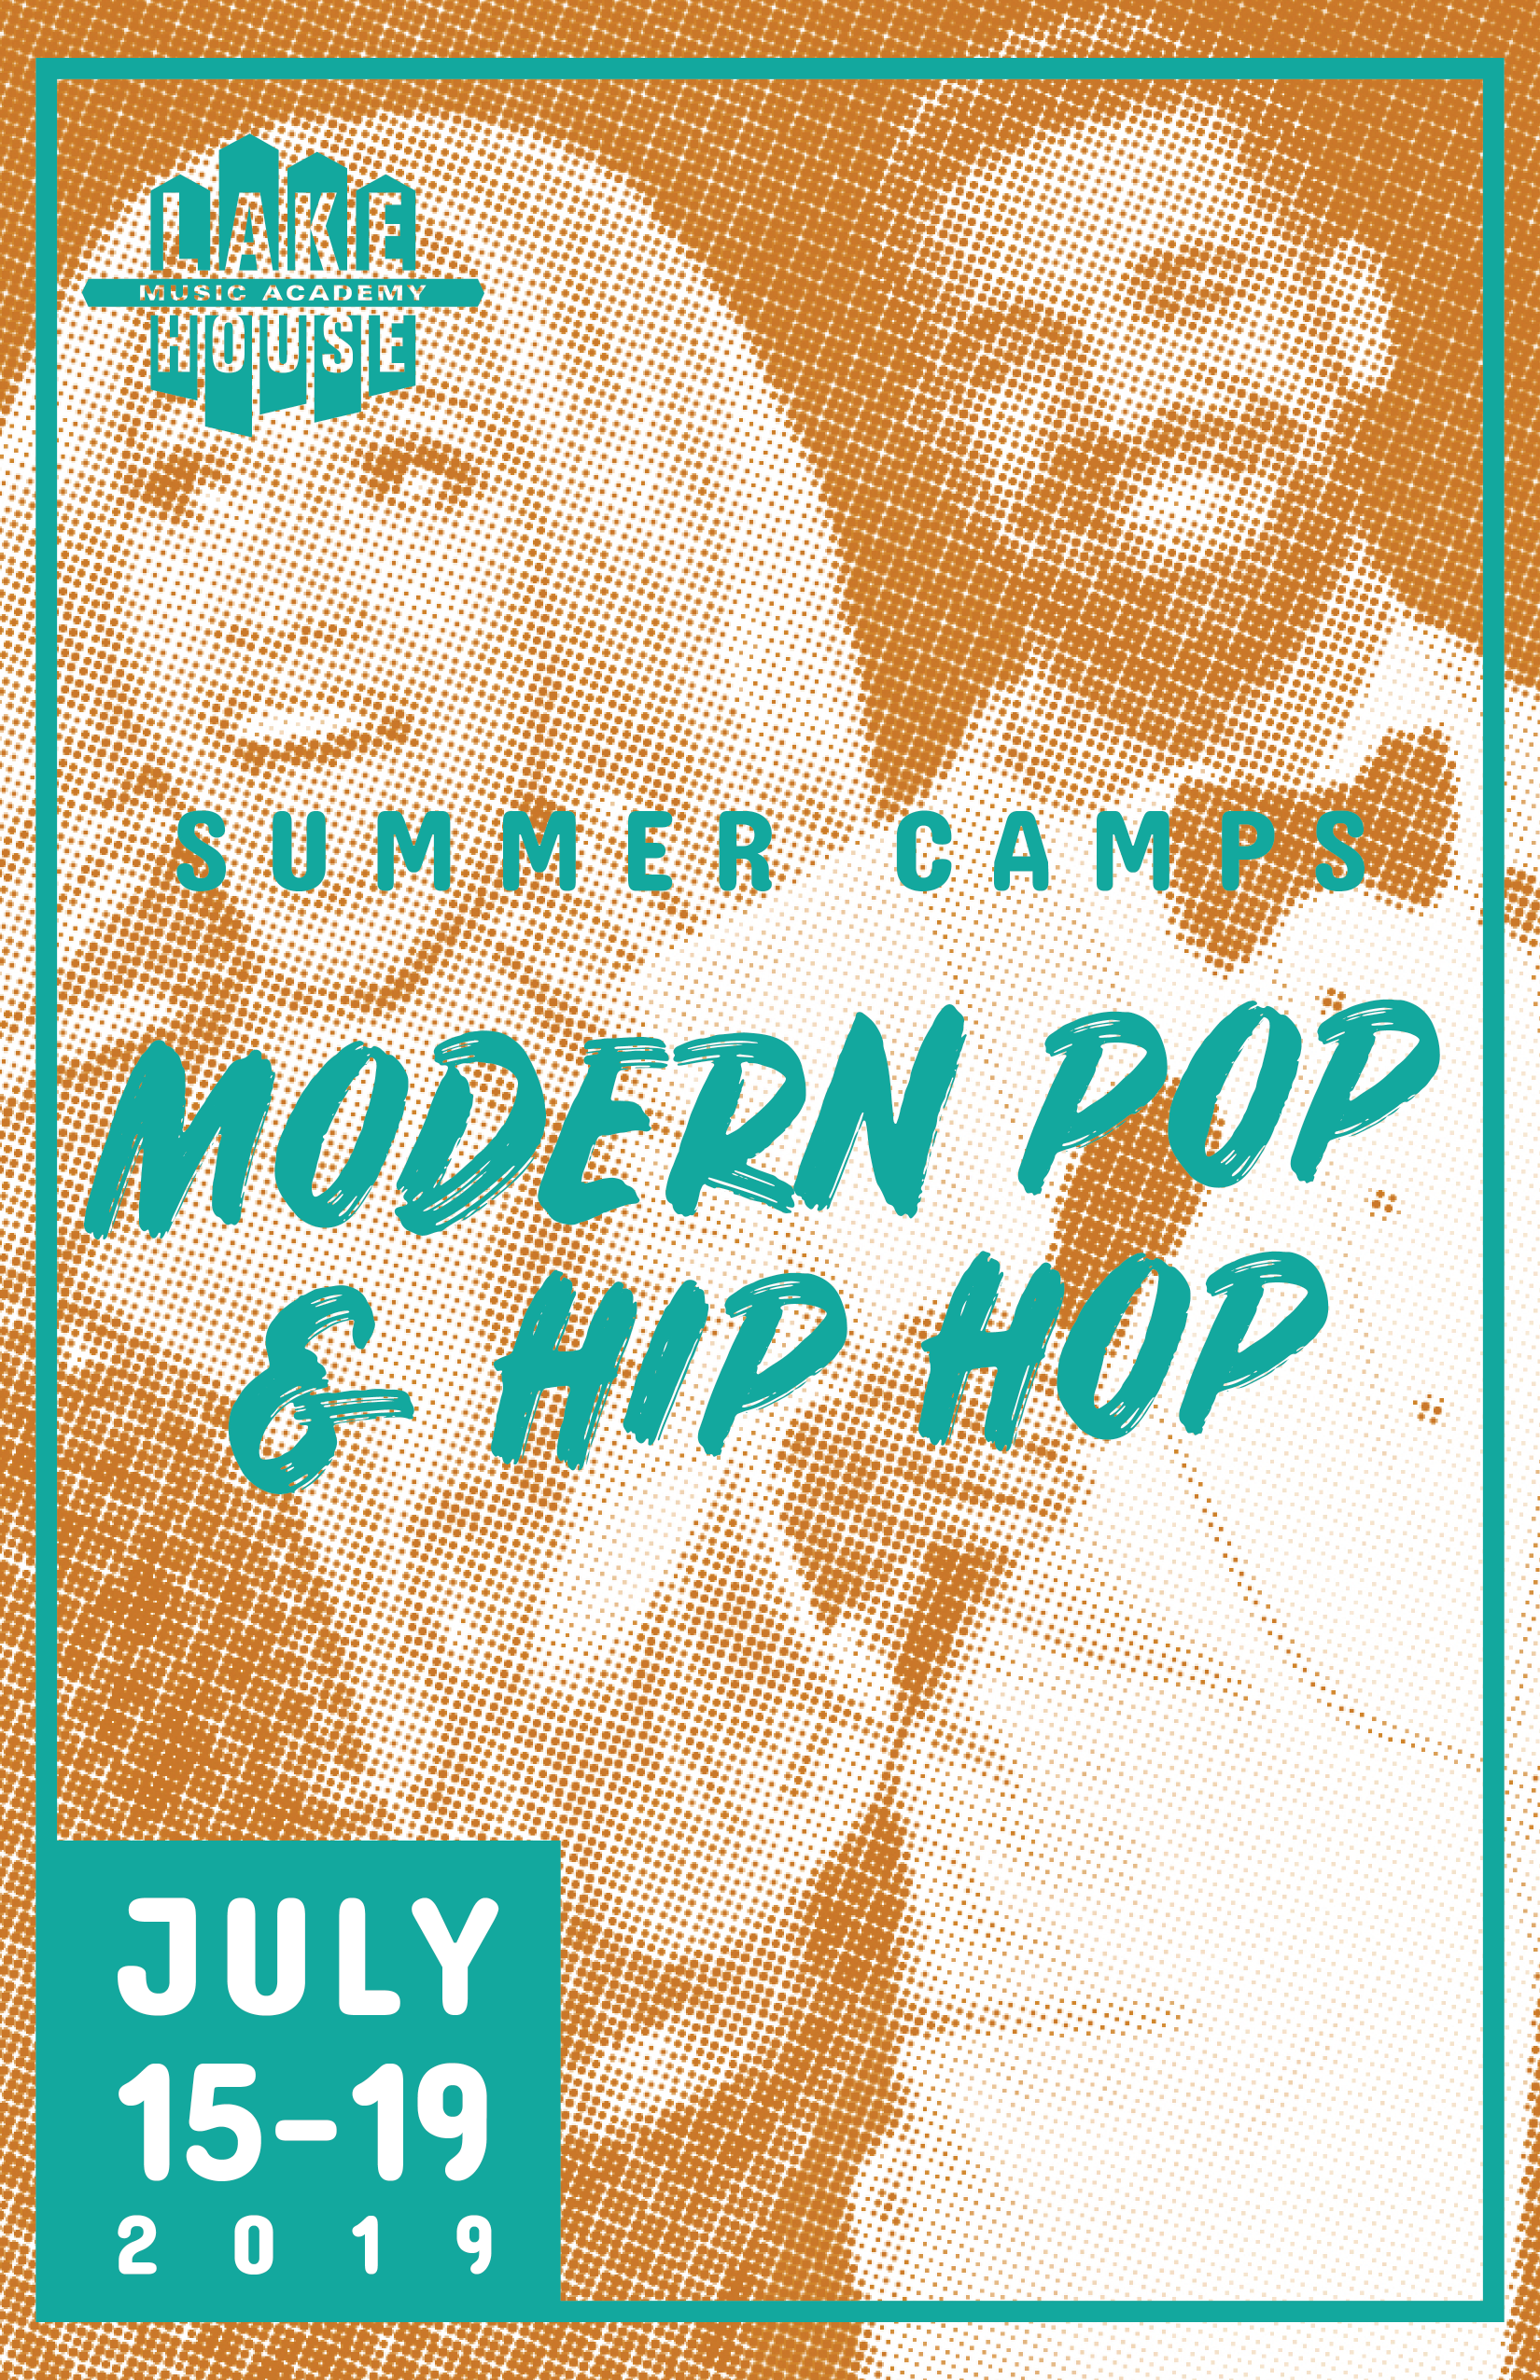 Modern pop & Hip hop - July 15 - 19